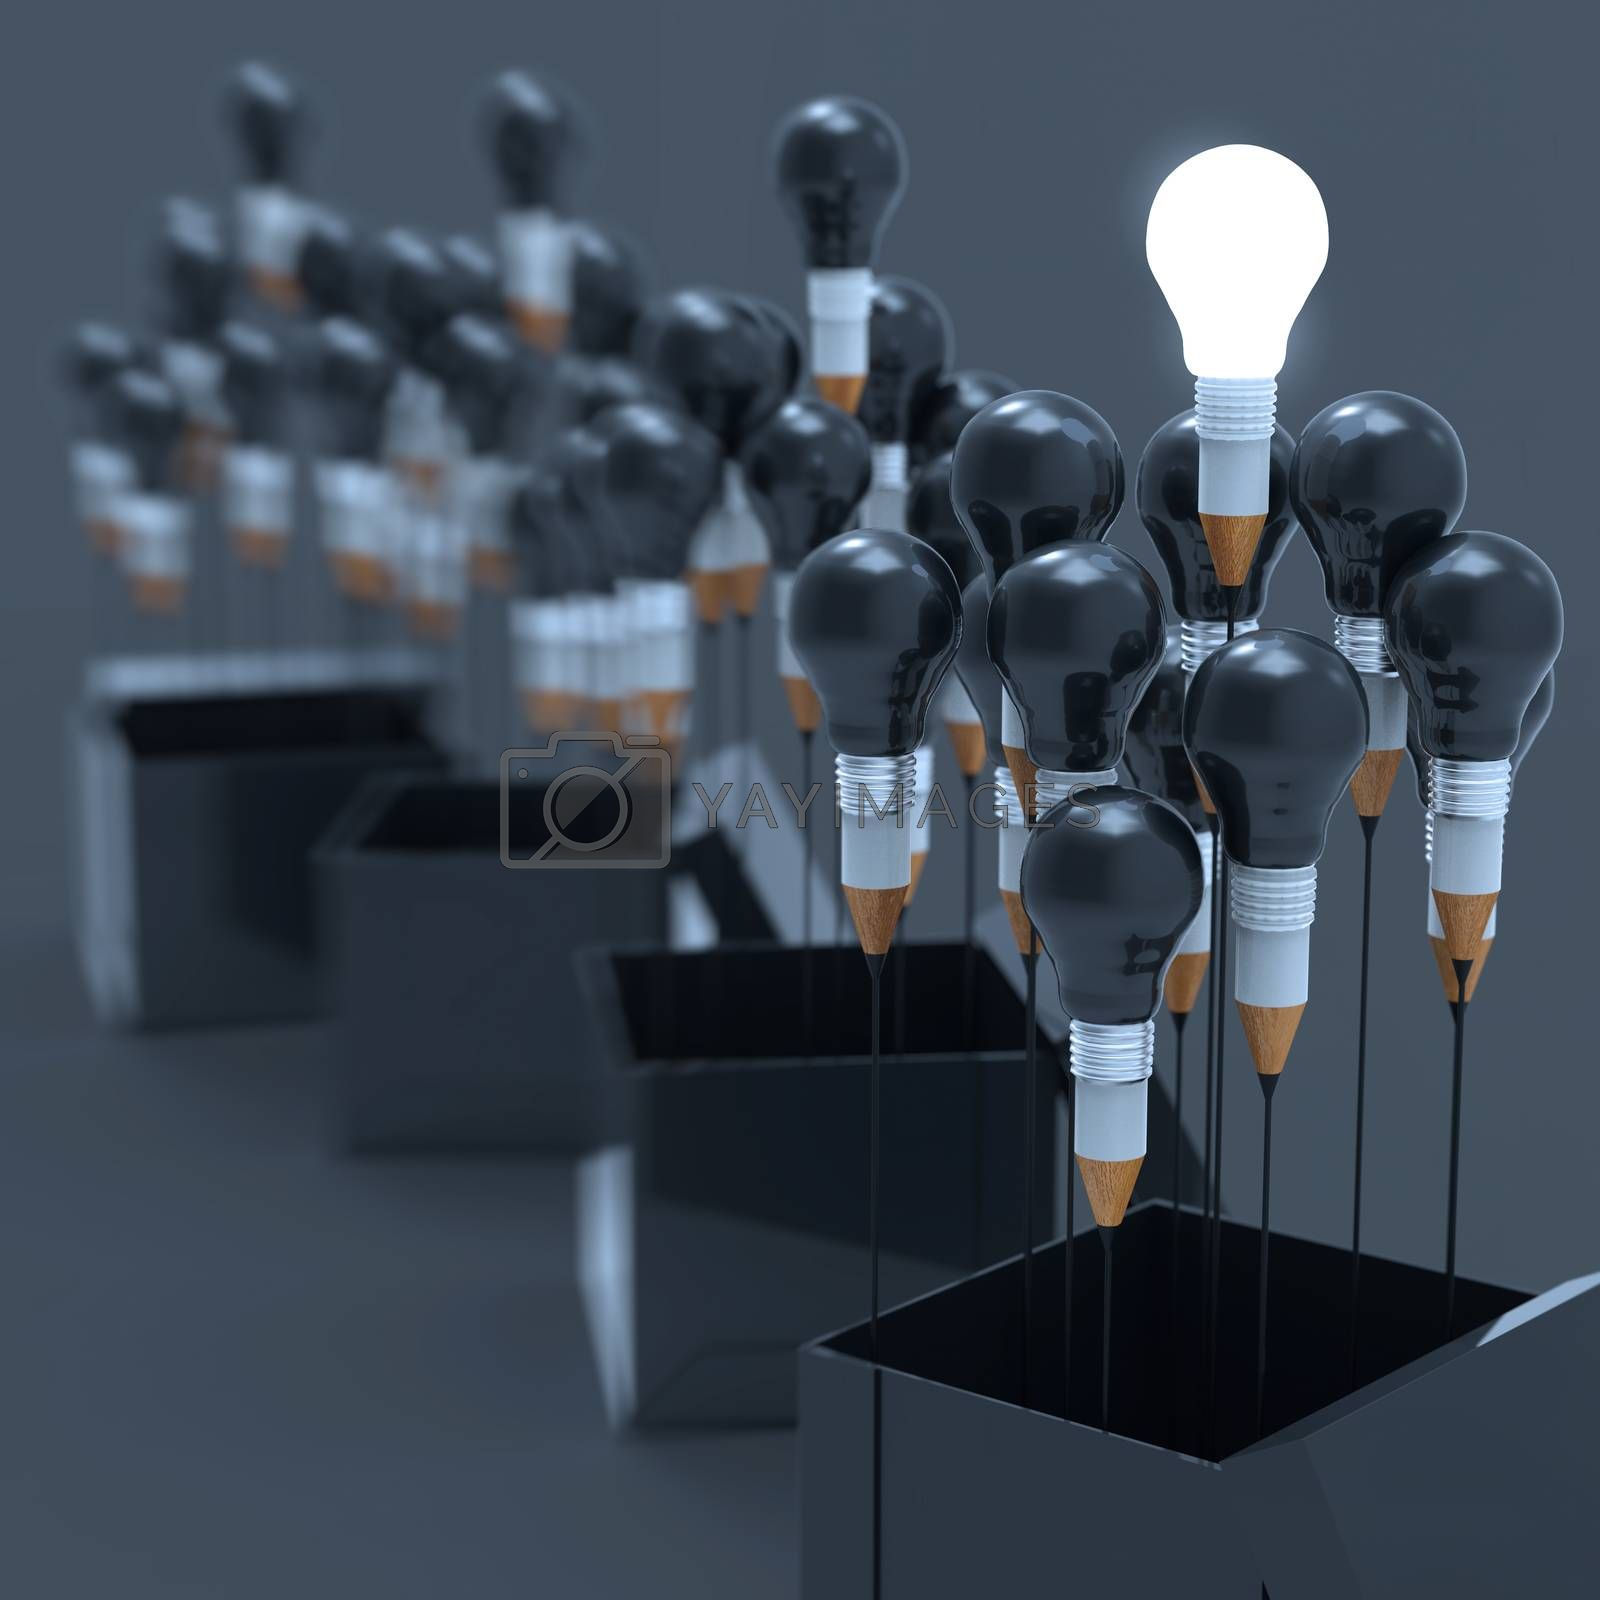 Royalty free image of drawing idea pencil and light bulb concept outside the box as cr by everythingpossible